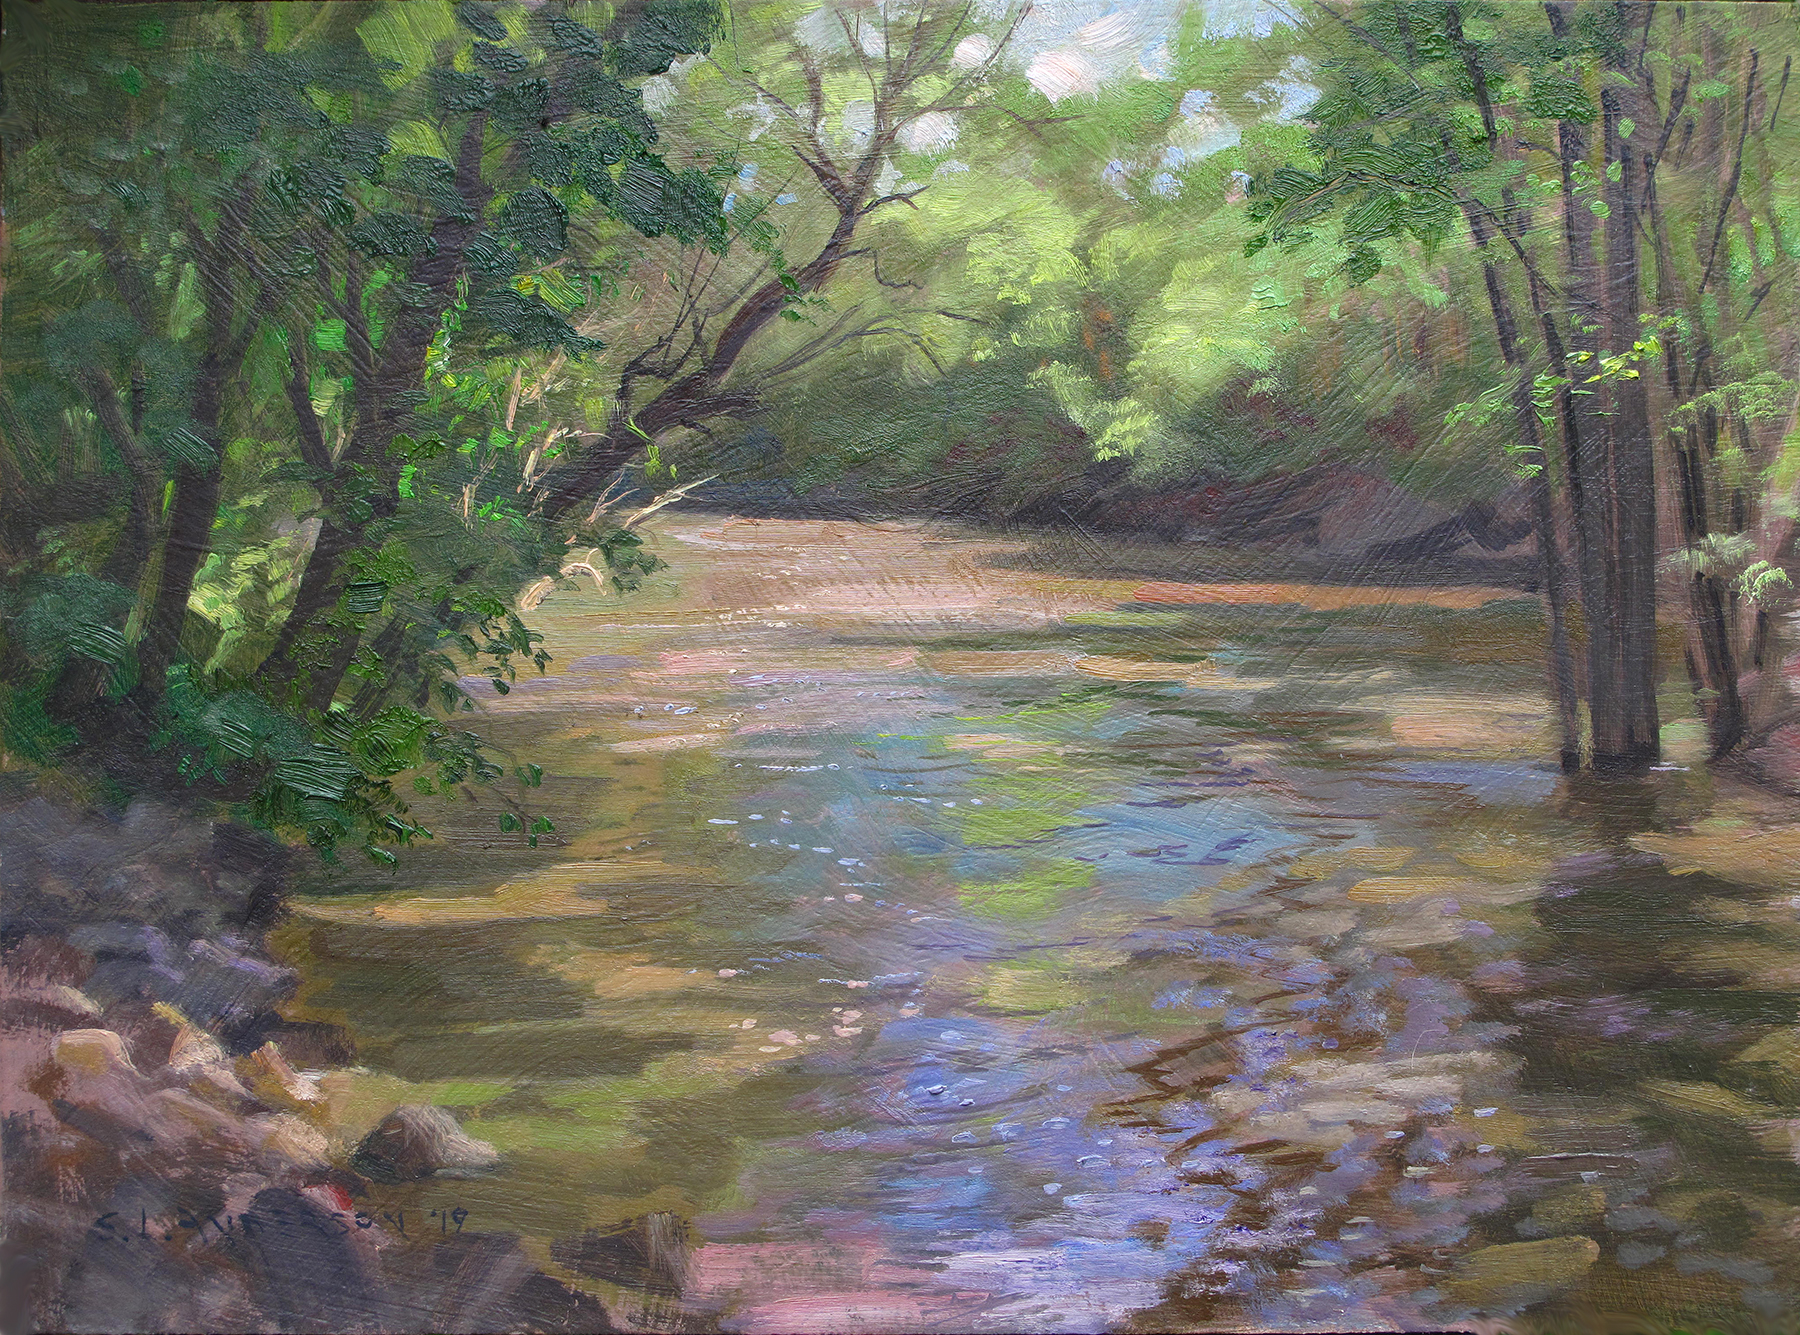 Swollen Creek    12 x 16 oil on panel   Painted on location near Carver, Minnesota. Reflections and shadows on rippling water…and a few ticks.